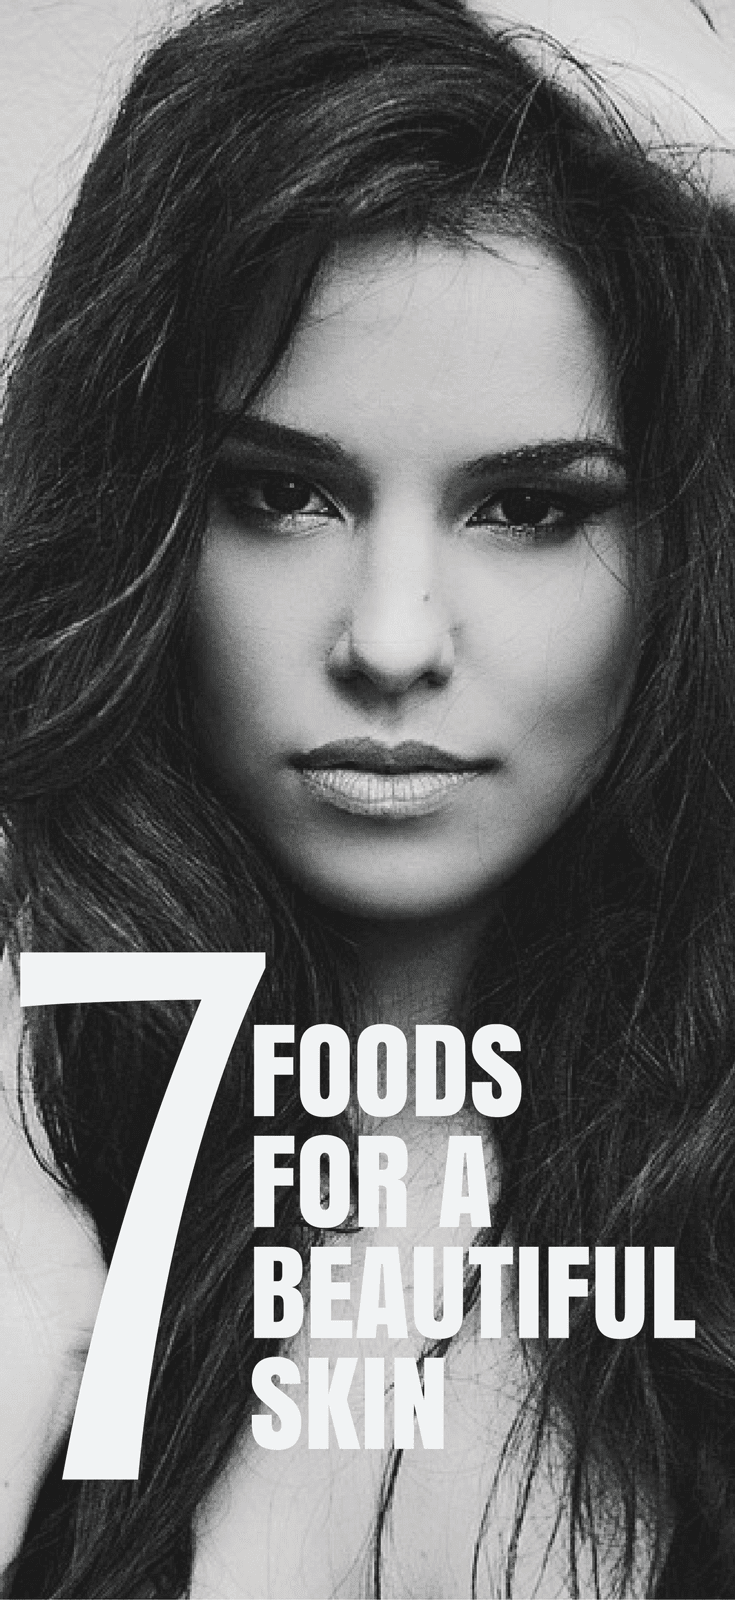 Top 7 Foods For A Beautiful Skin